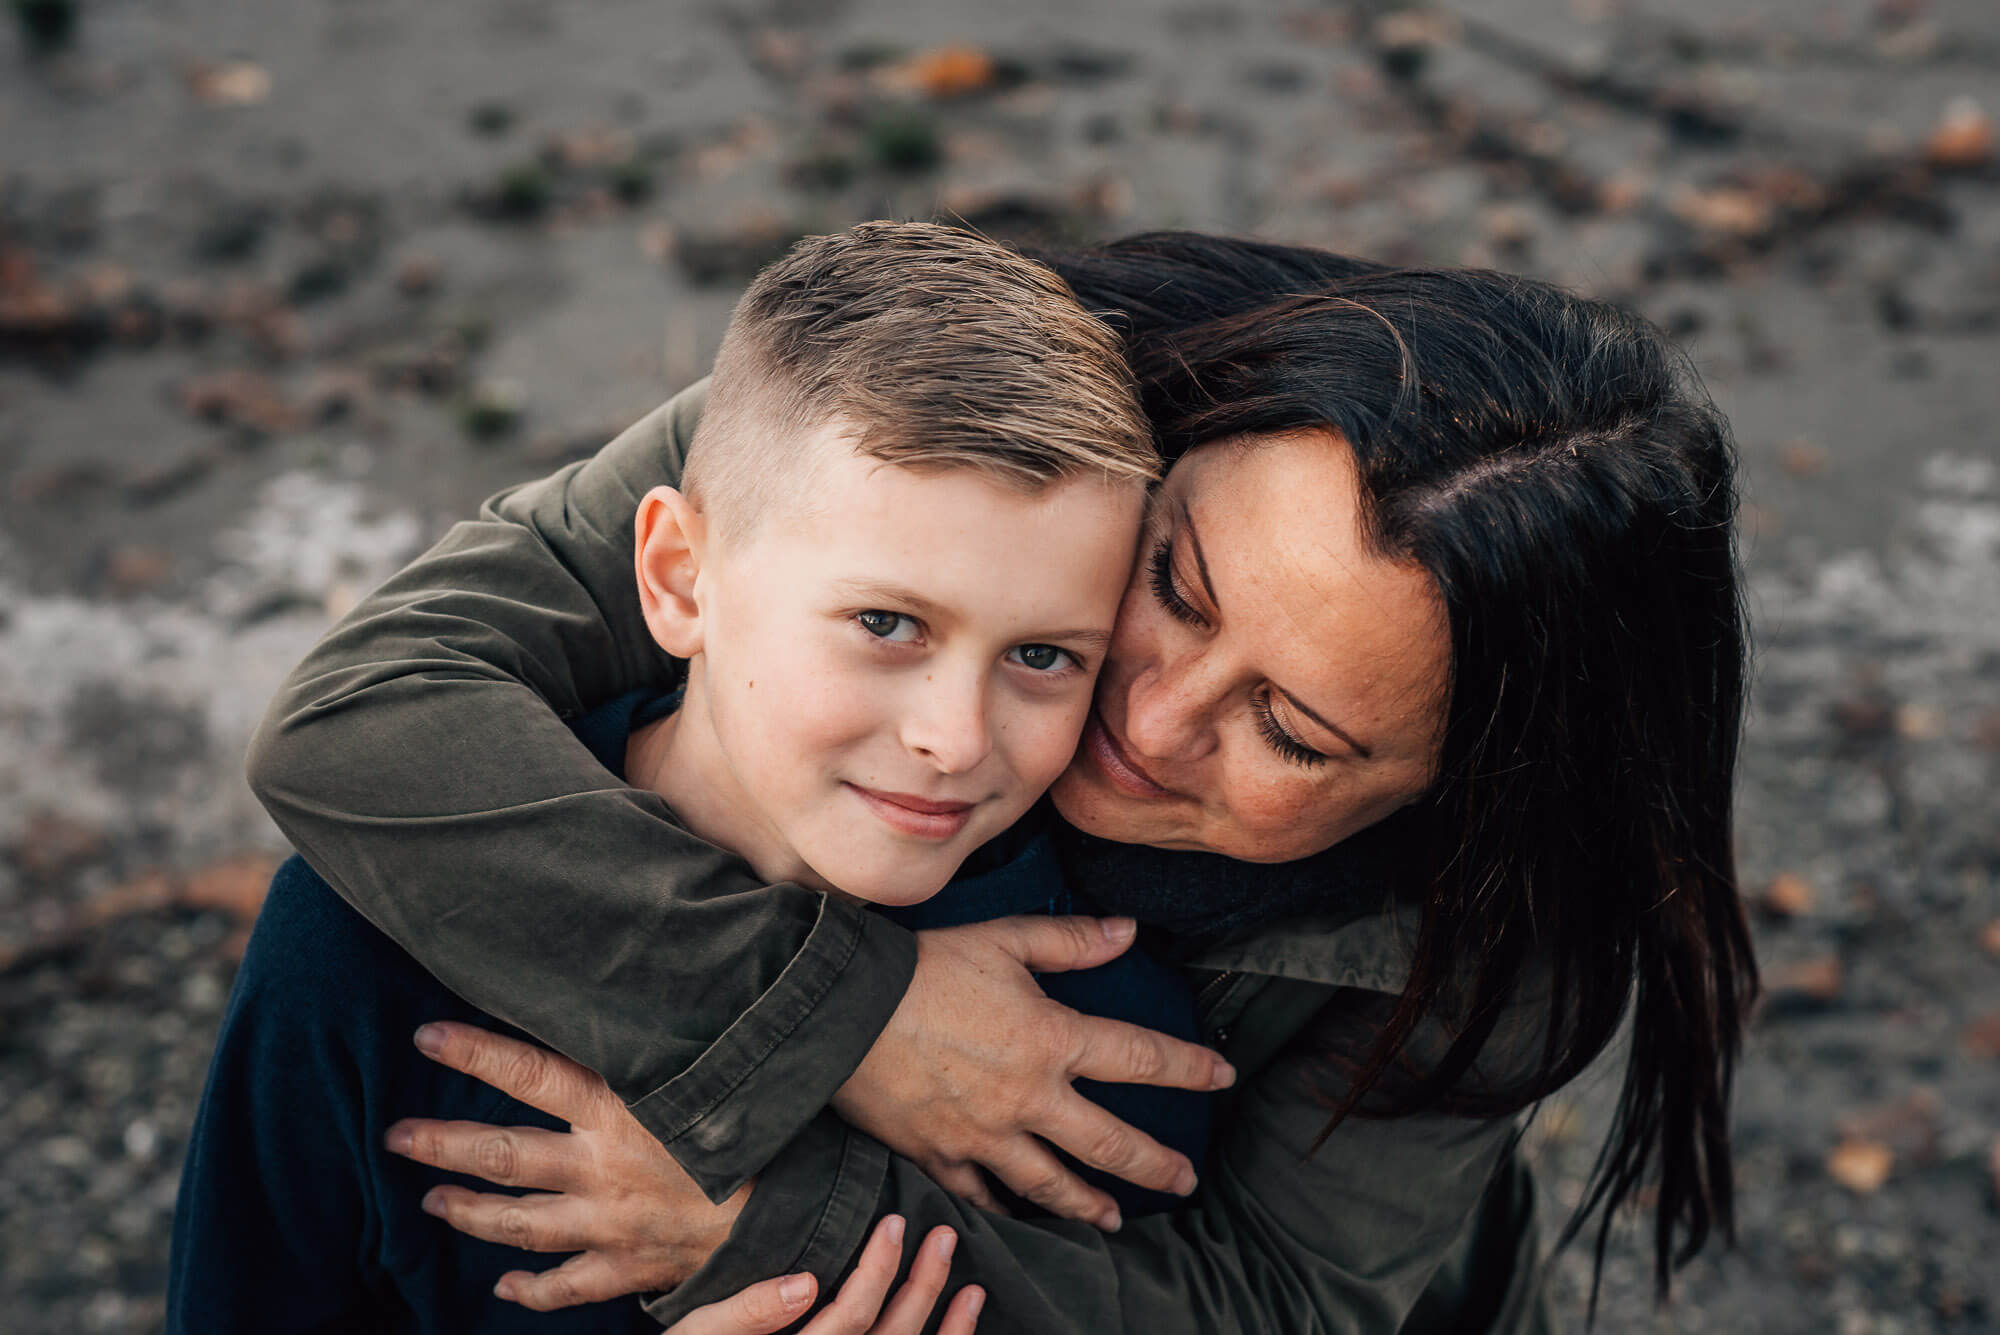 outdoor lifestlye family photos of mom hugging son from behind